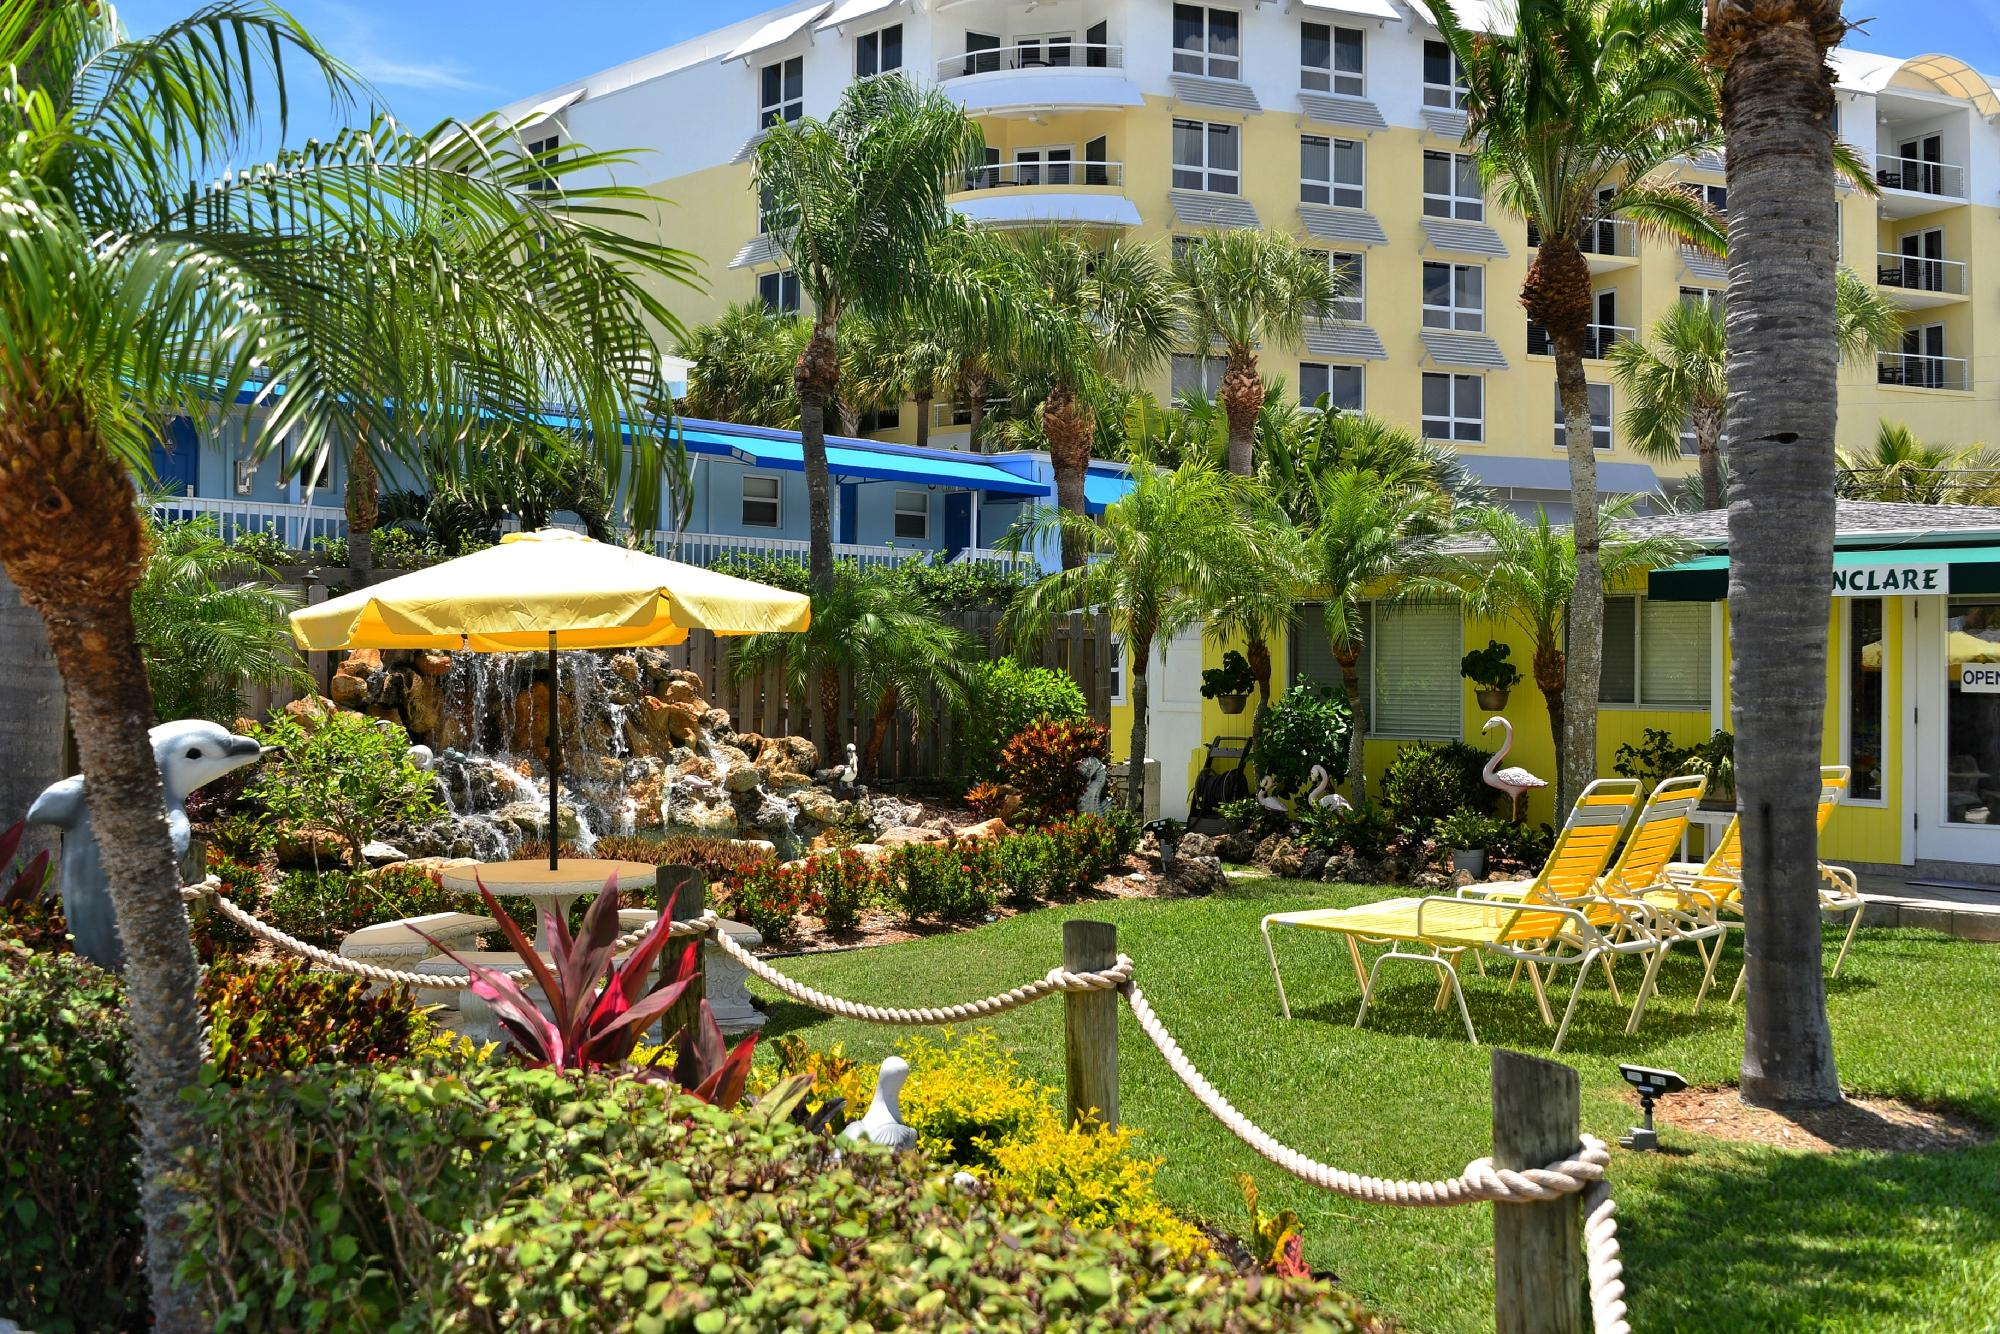 conclare aman's beach resort (siesta key, fl) 2017 review - family